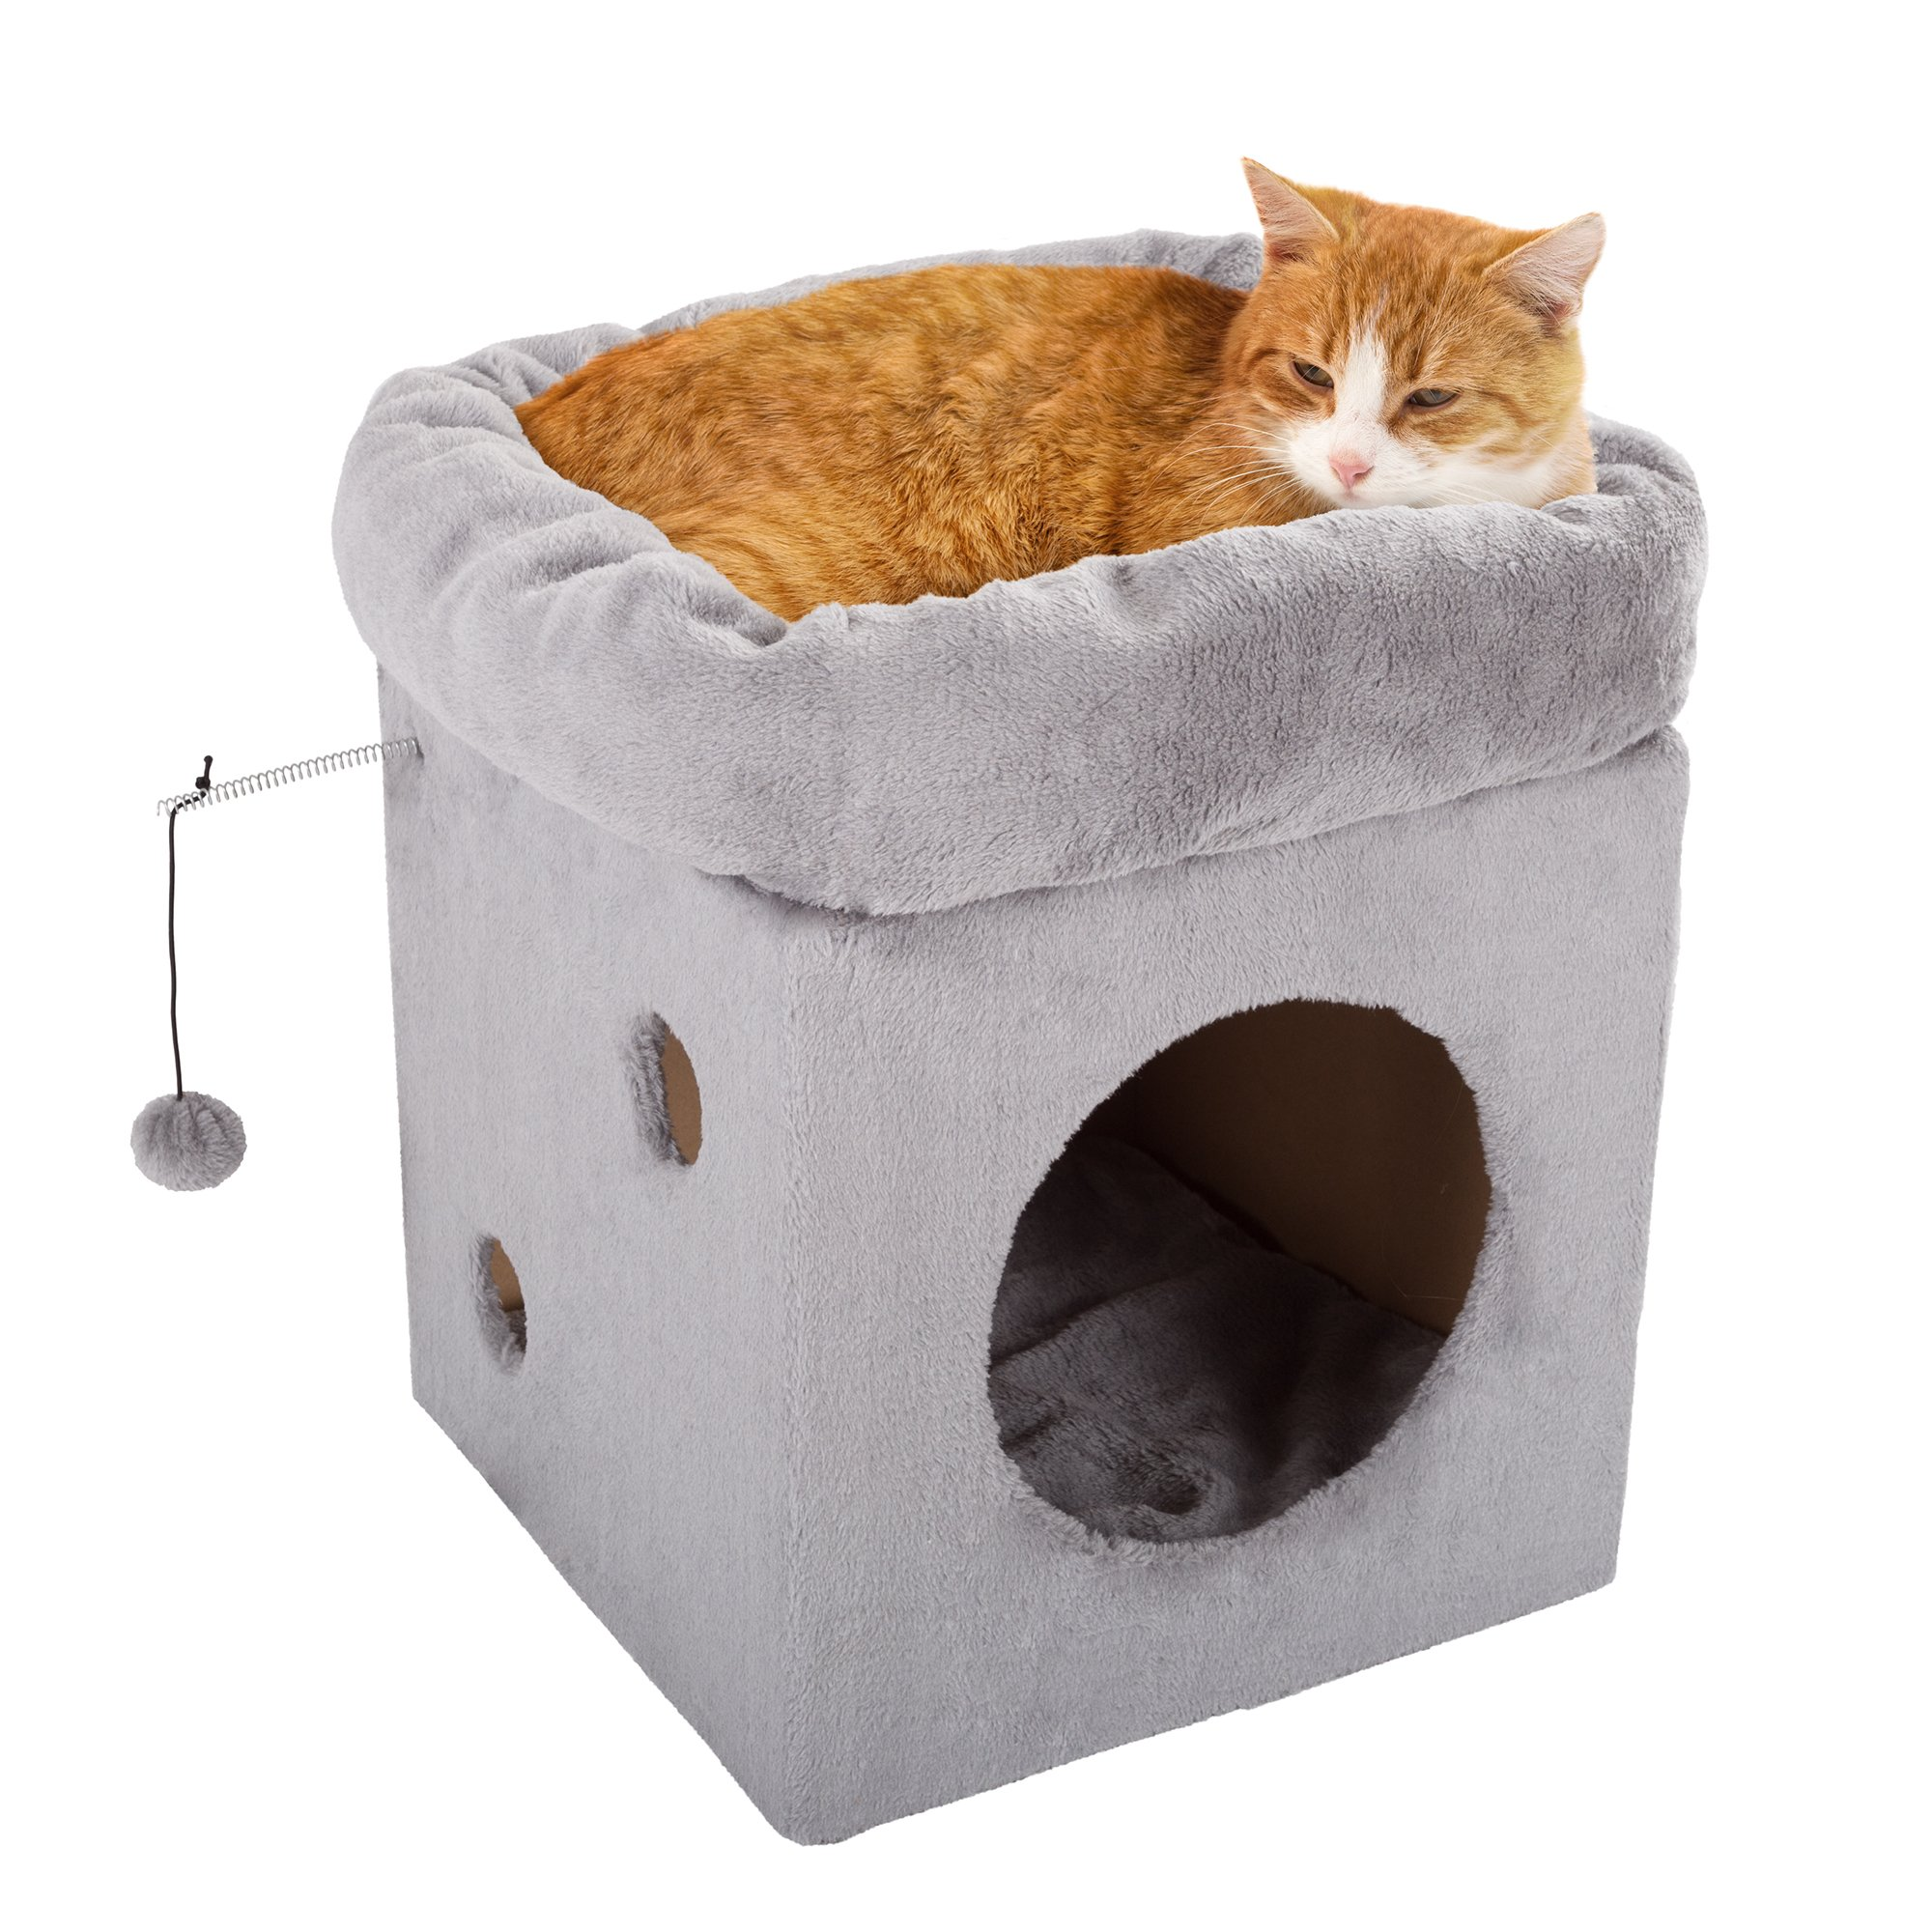 Cat Pet Bed/House with 2 Removable Plush Cushion Pads- Indoor Enclosed Covered Condo/Cavern for Cats, Kittens, and Small Pets by PETMAKER (Frost Gray) by PETMAKER